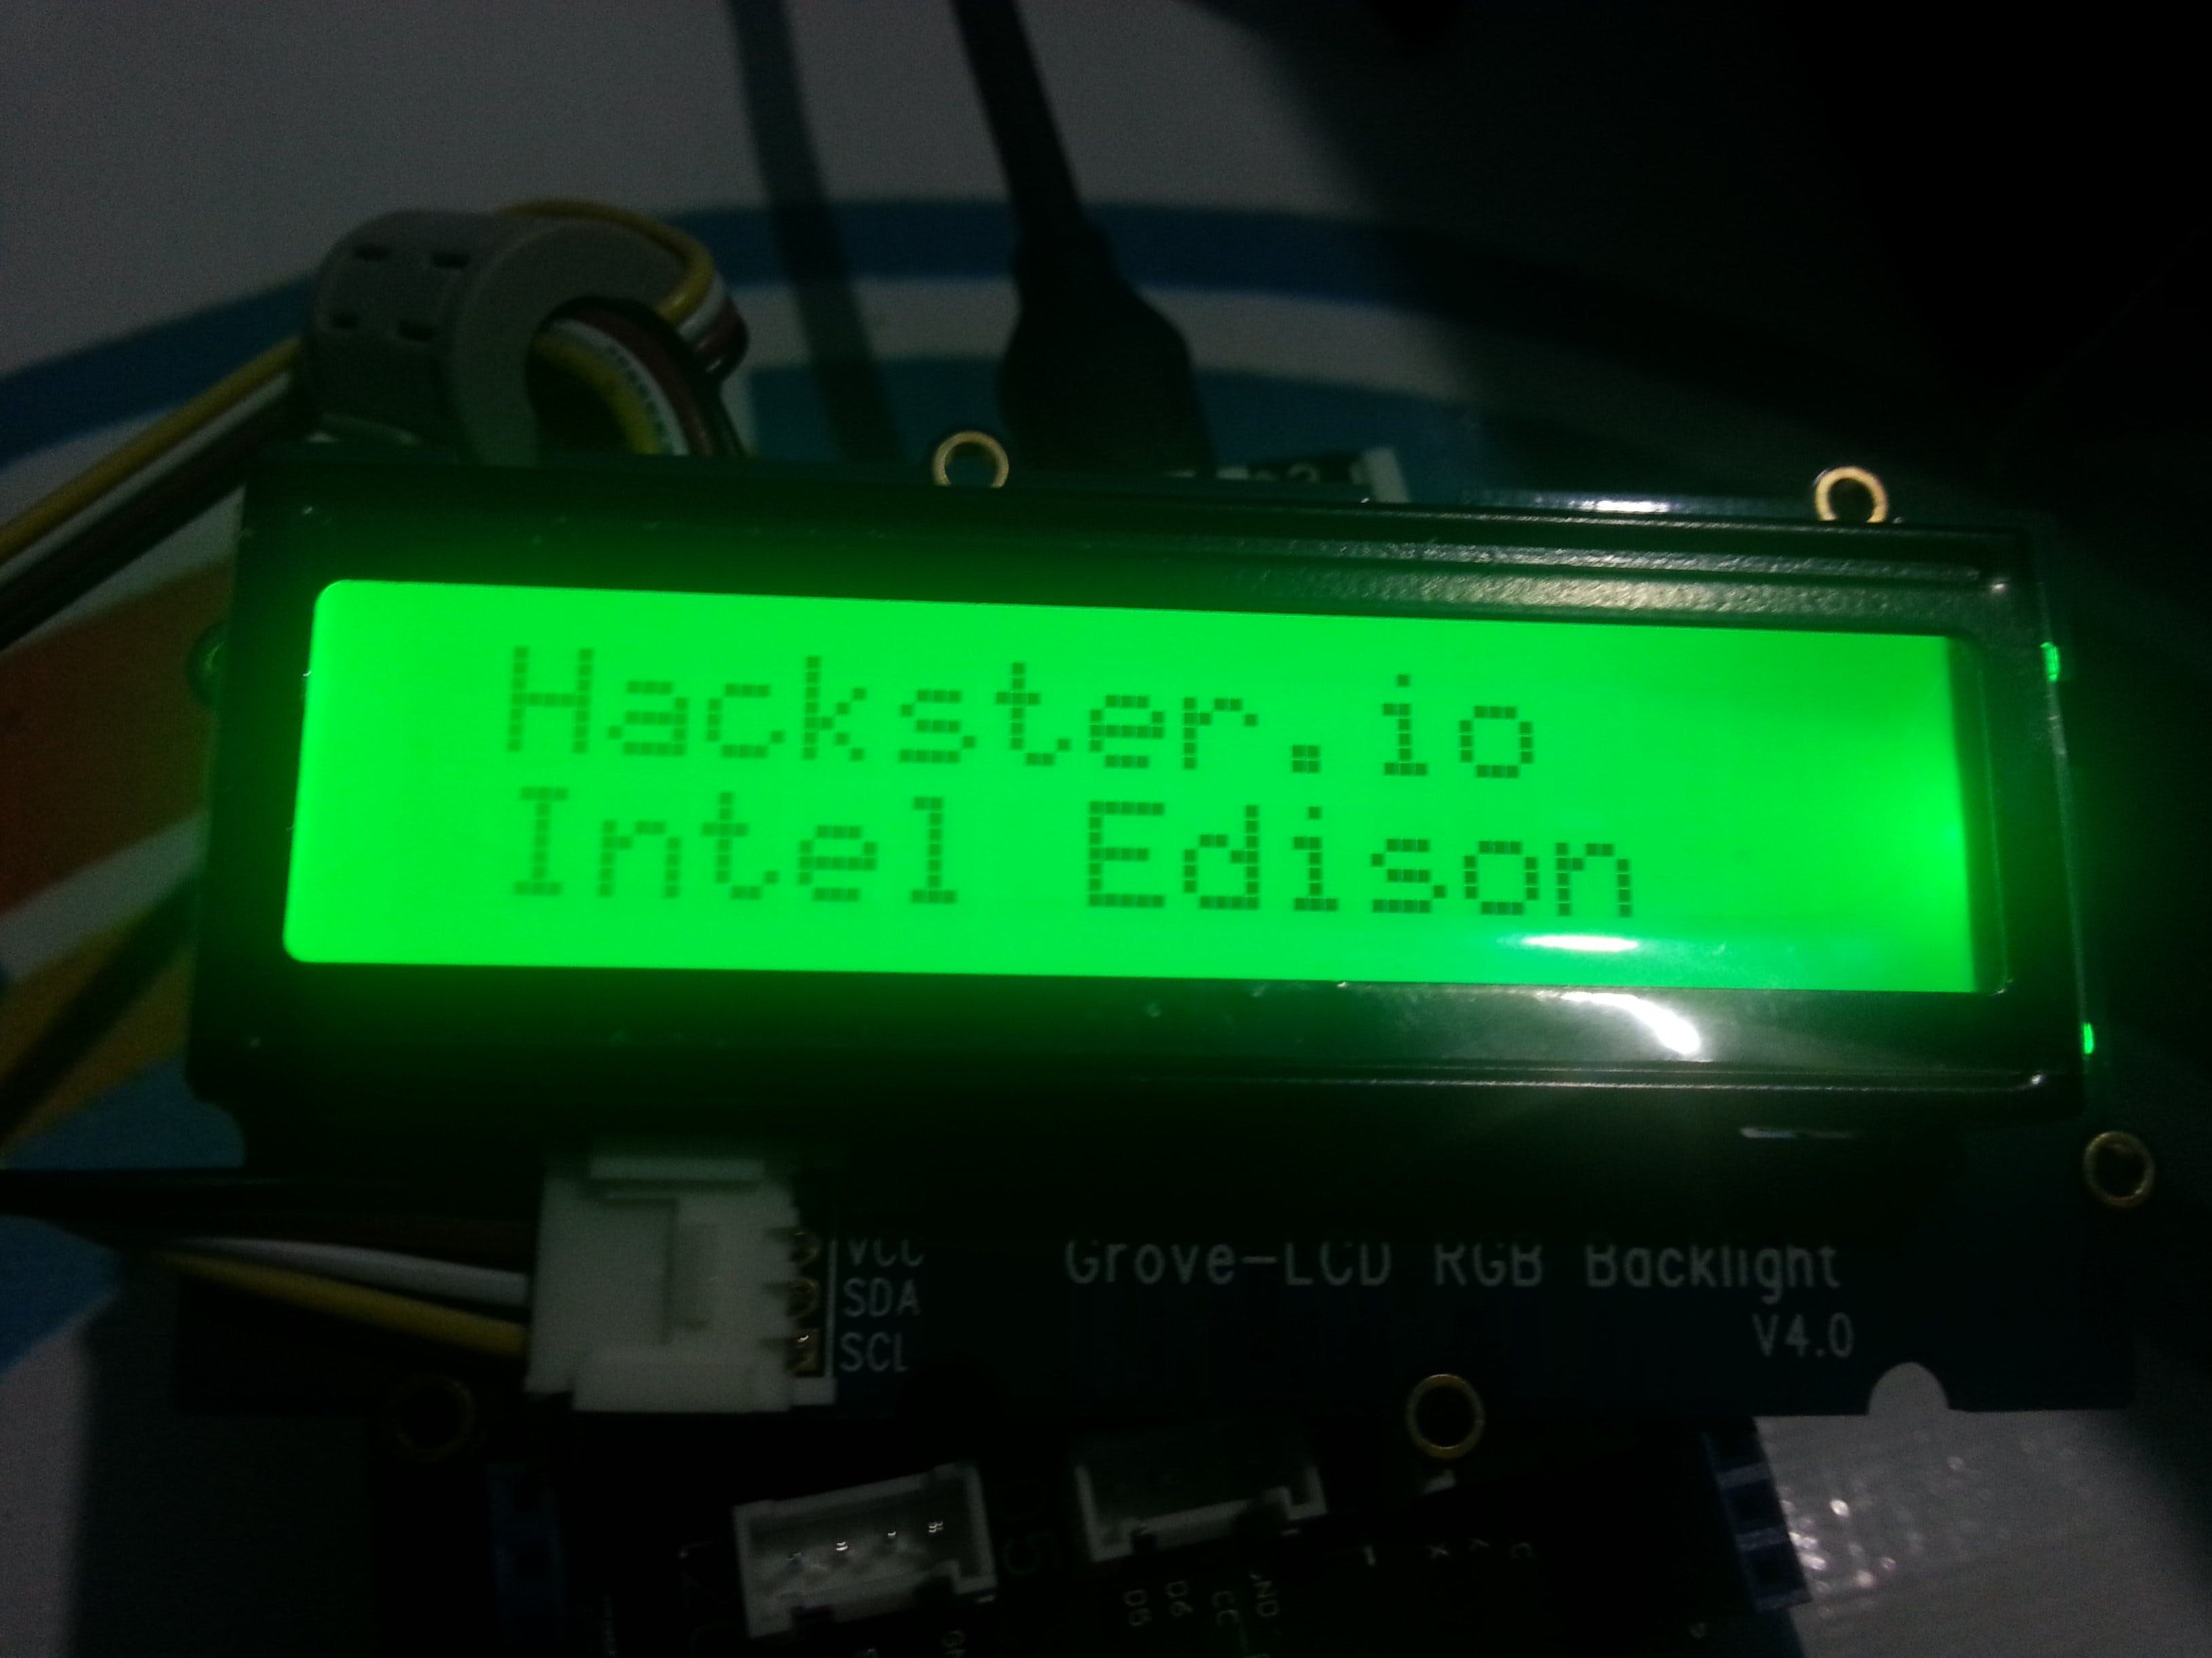 Intel Edison with Grove LCD